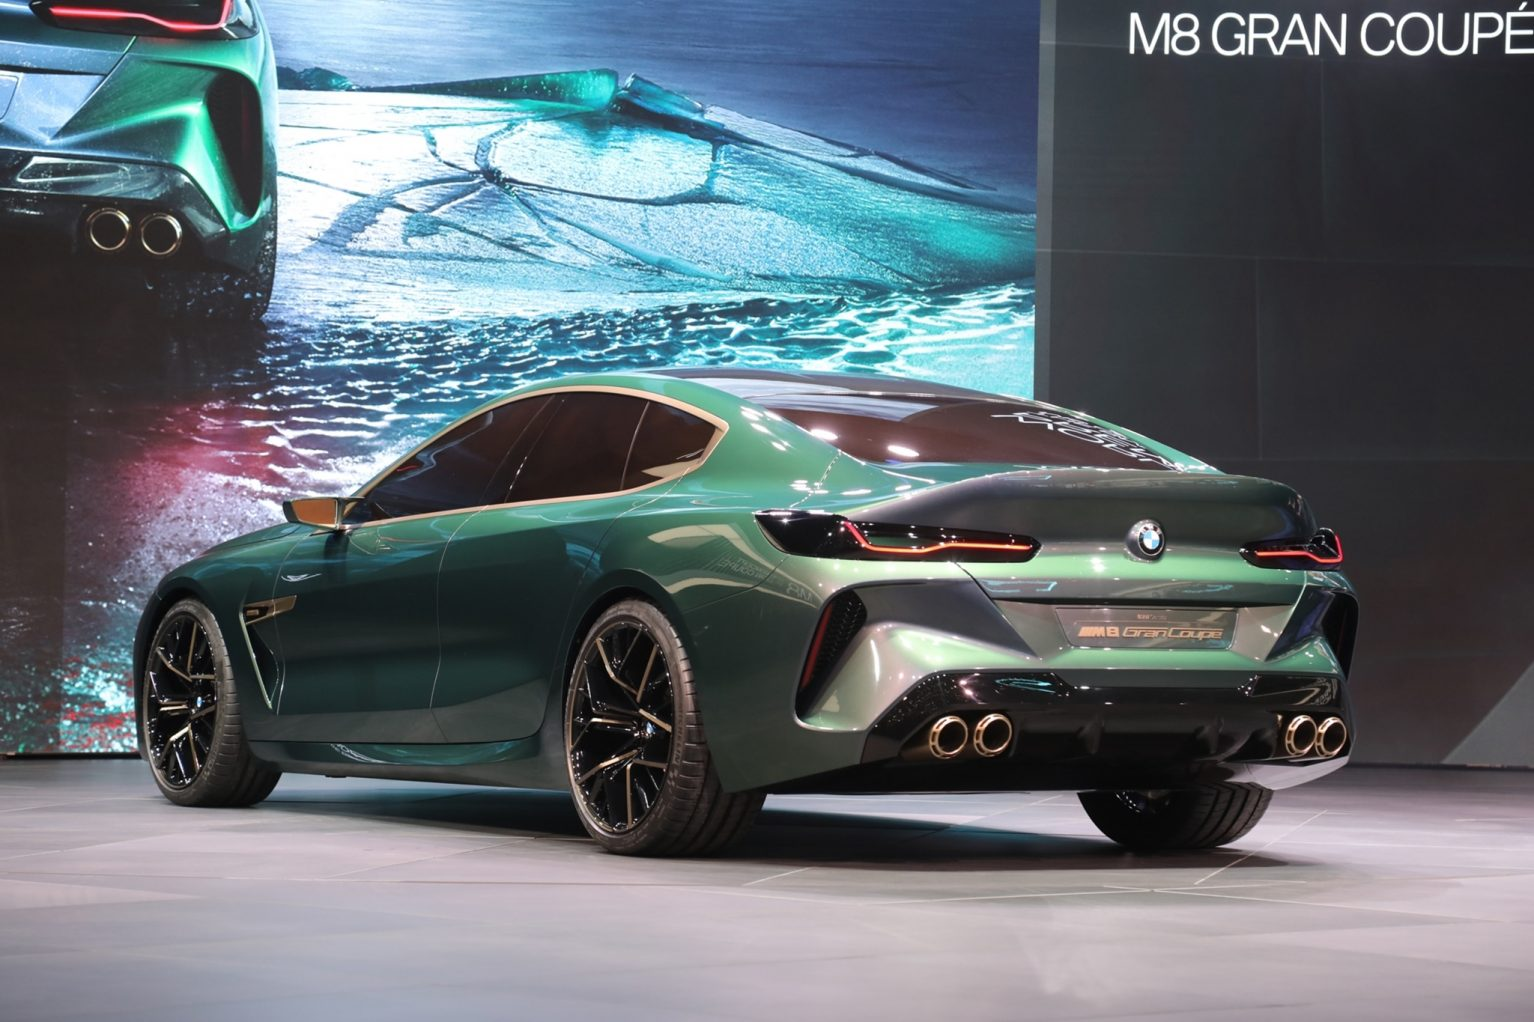 76 The Best 2019 Bmw M8 Model Review Cars Review Cars